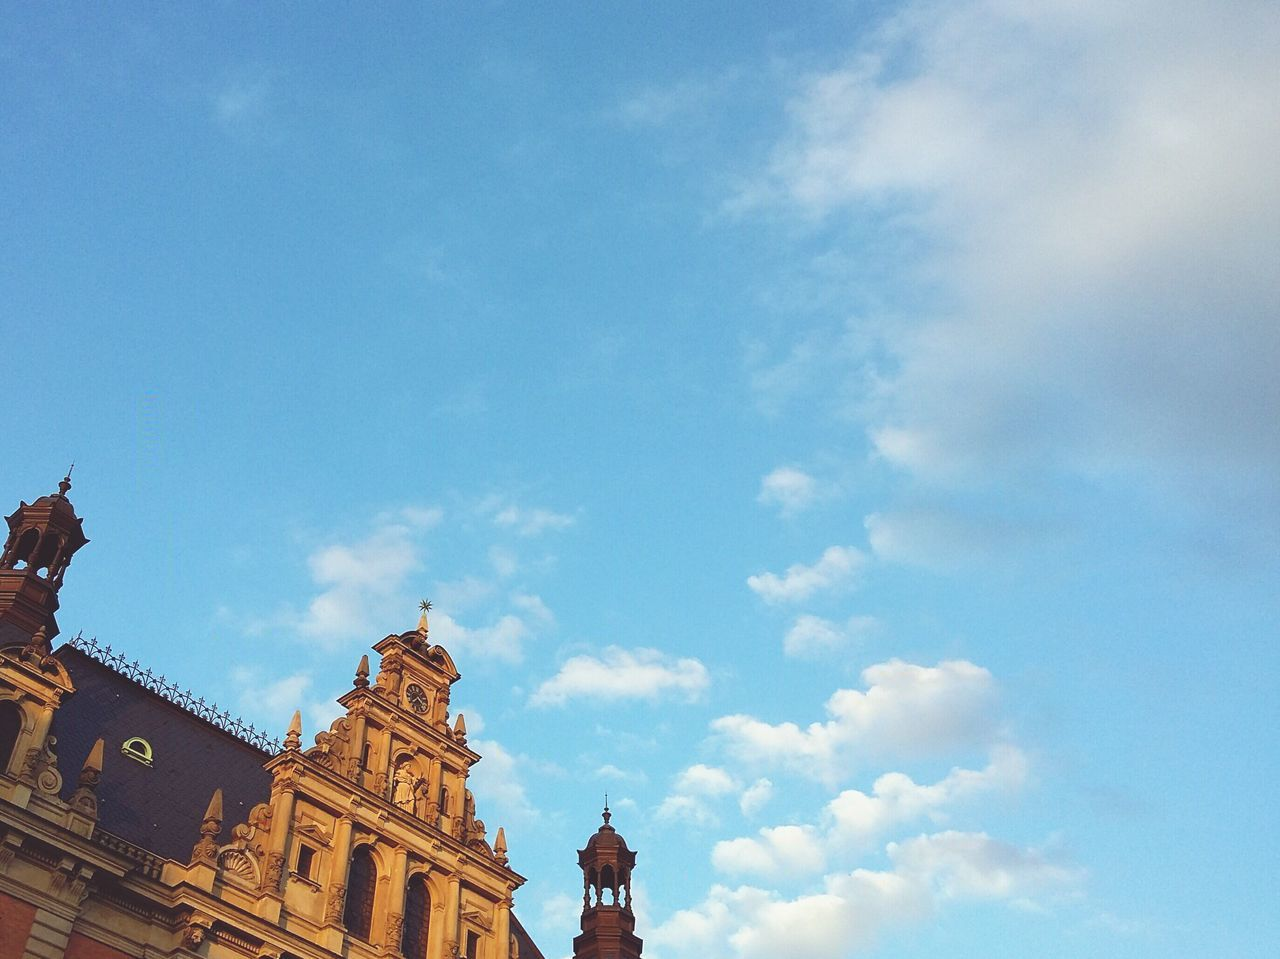 architecture, sky, cloud - sky, building exterior, built structure, religion, place of worship, low angle view, no people, spirituality, day, outdoors